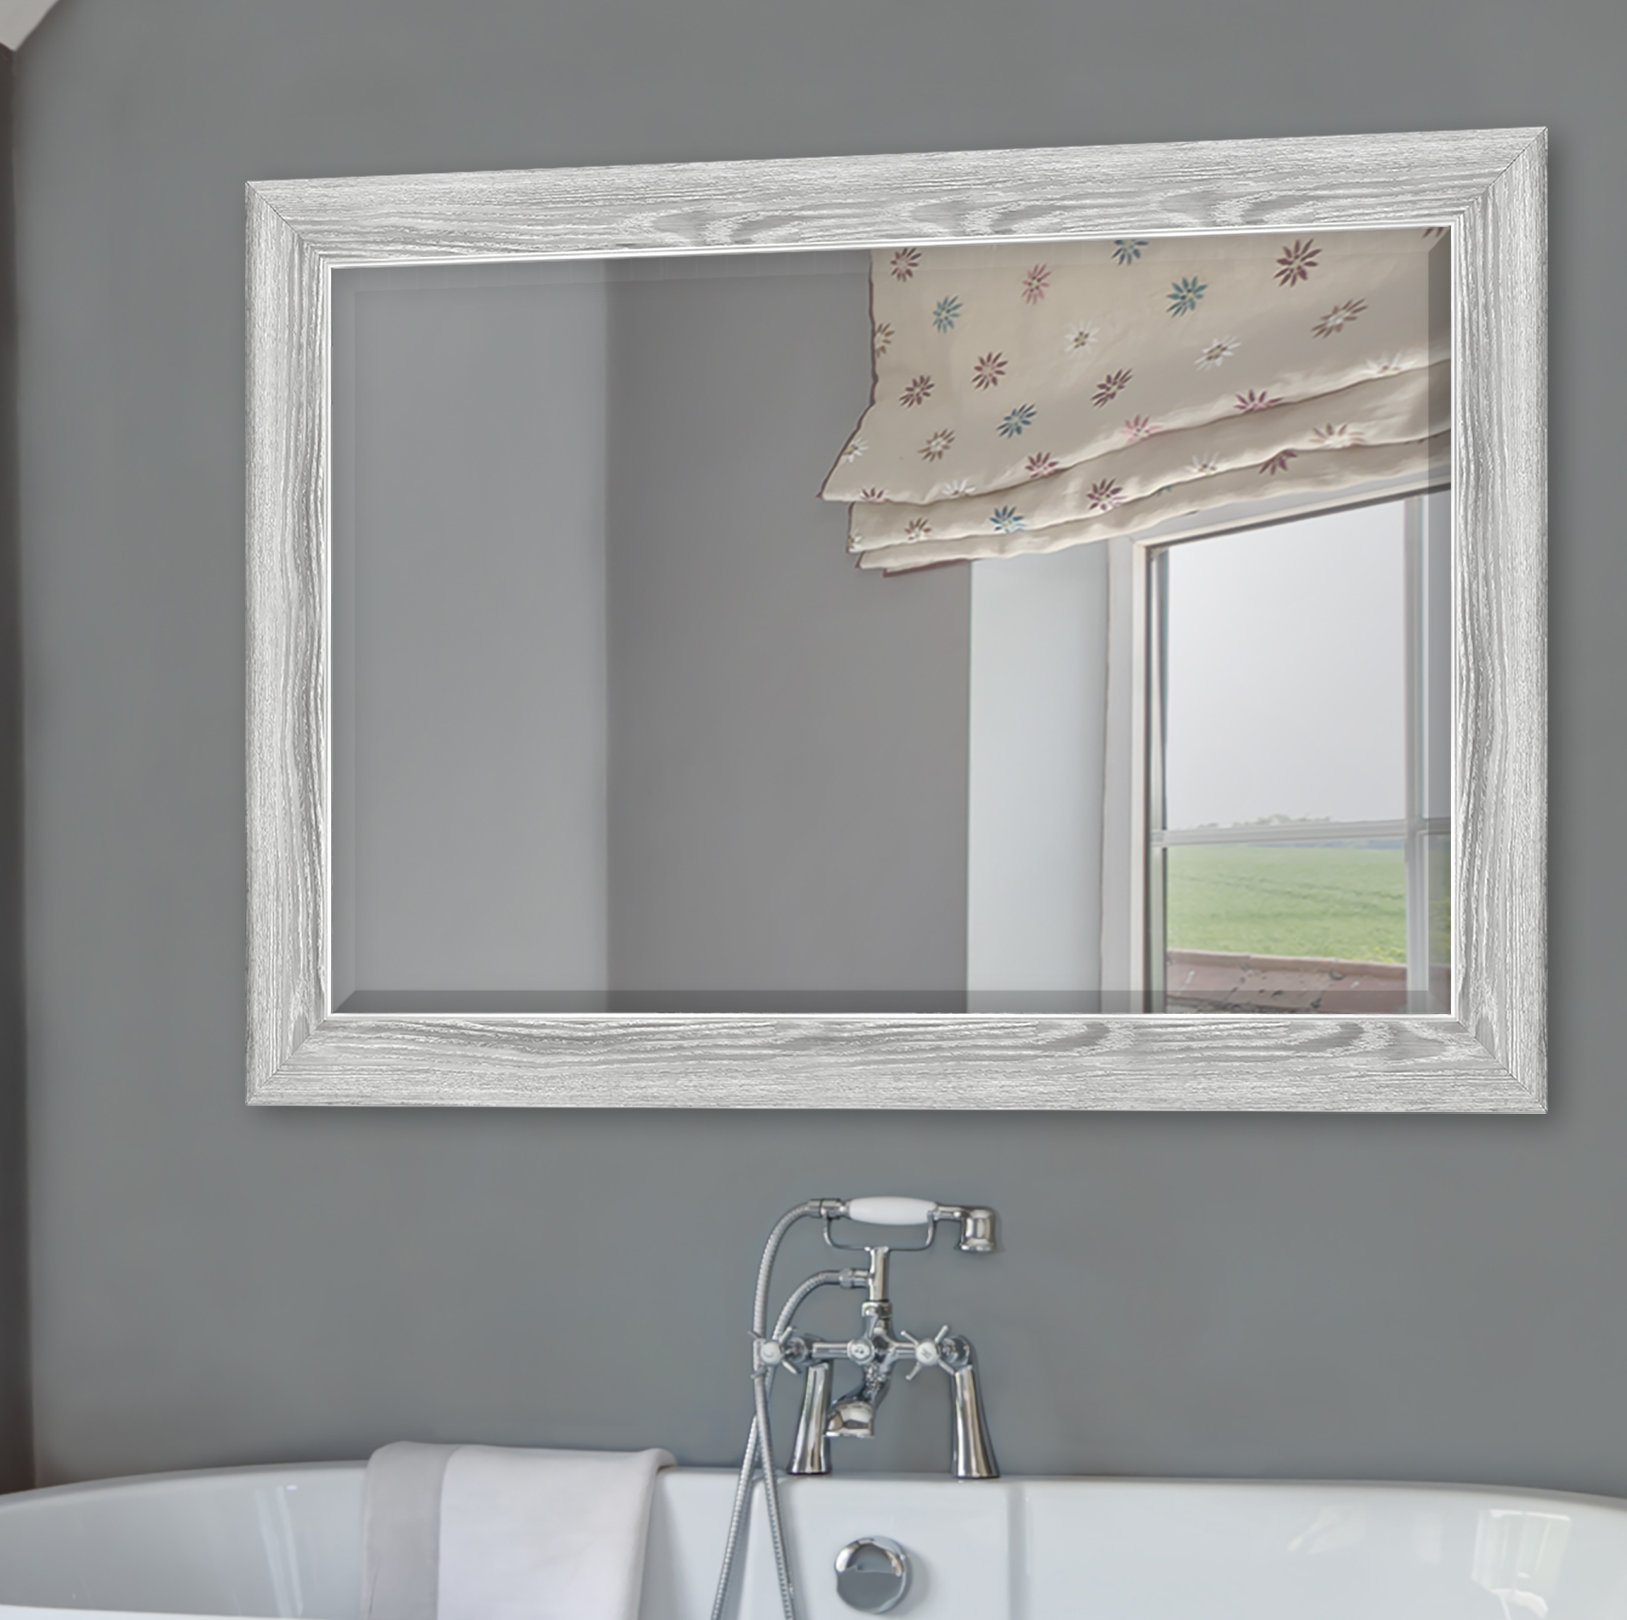 Yeung Curvature Bathroom/vanity Mirror For Landover Rustic Distressed Bathroom/vanity Mirrors (Image 20 of 20)